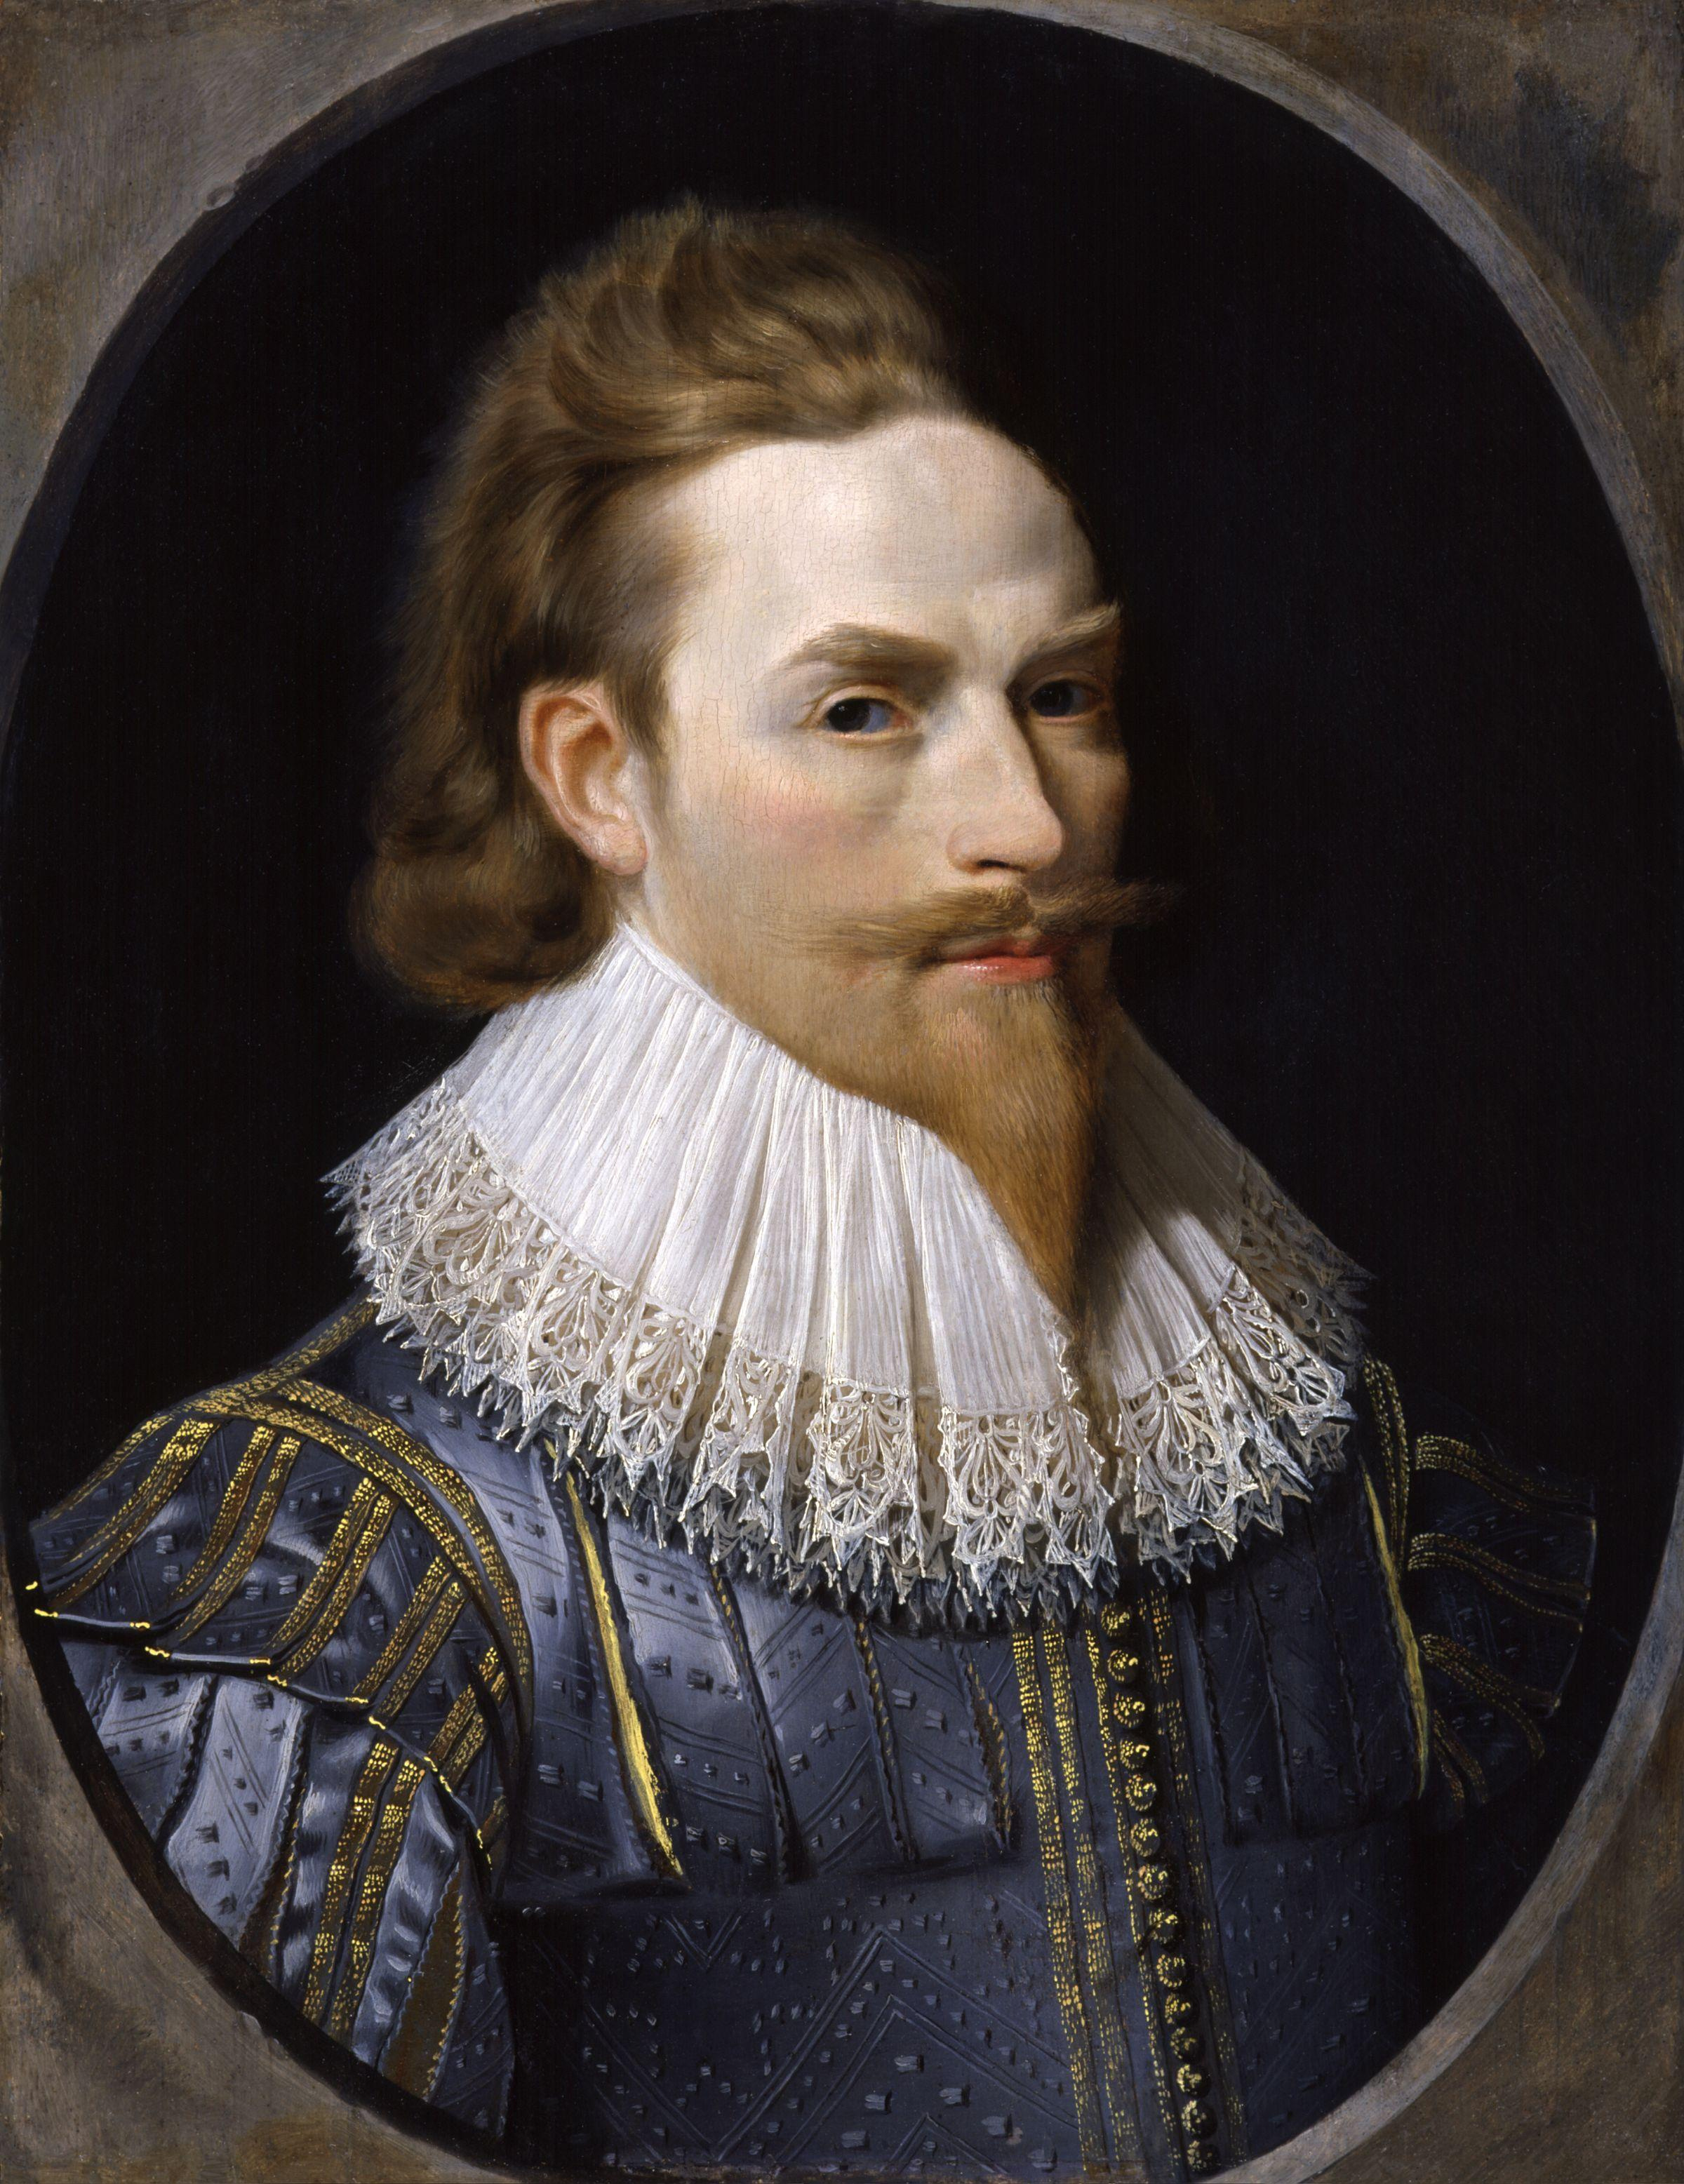 Nathaniel Bacon was born on January 2nd, 1647